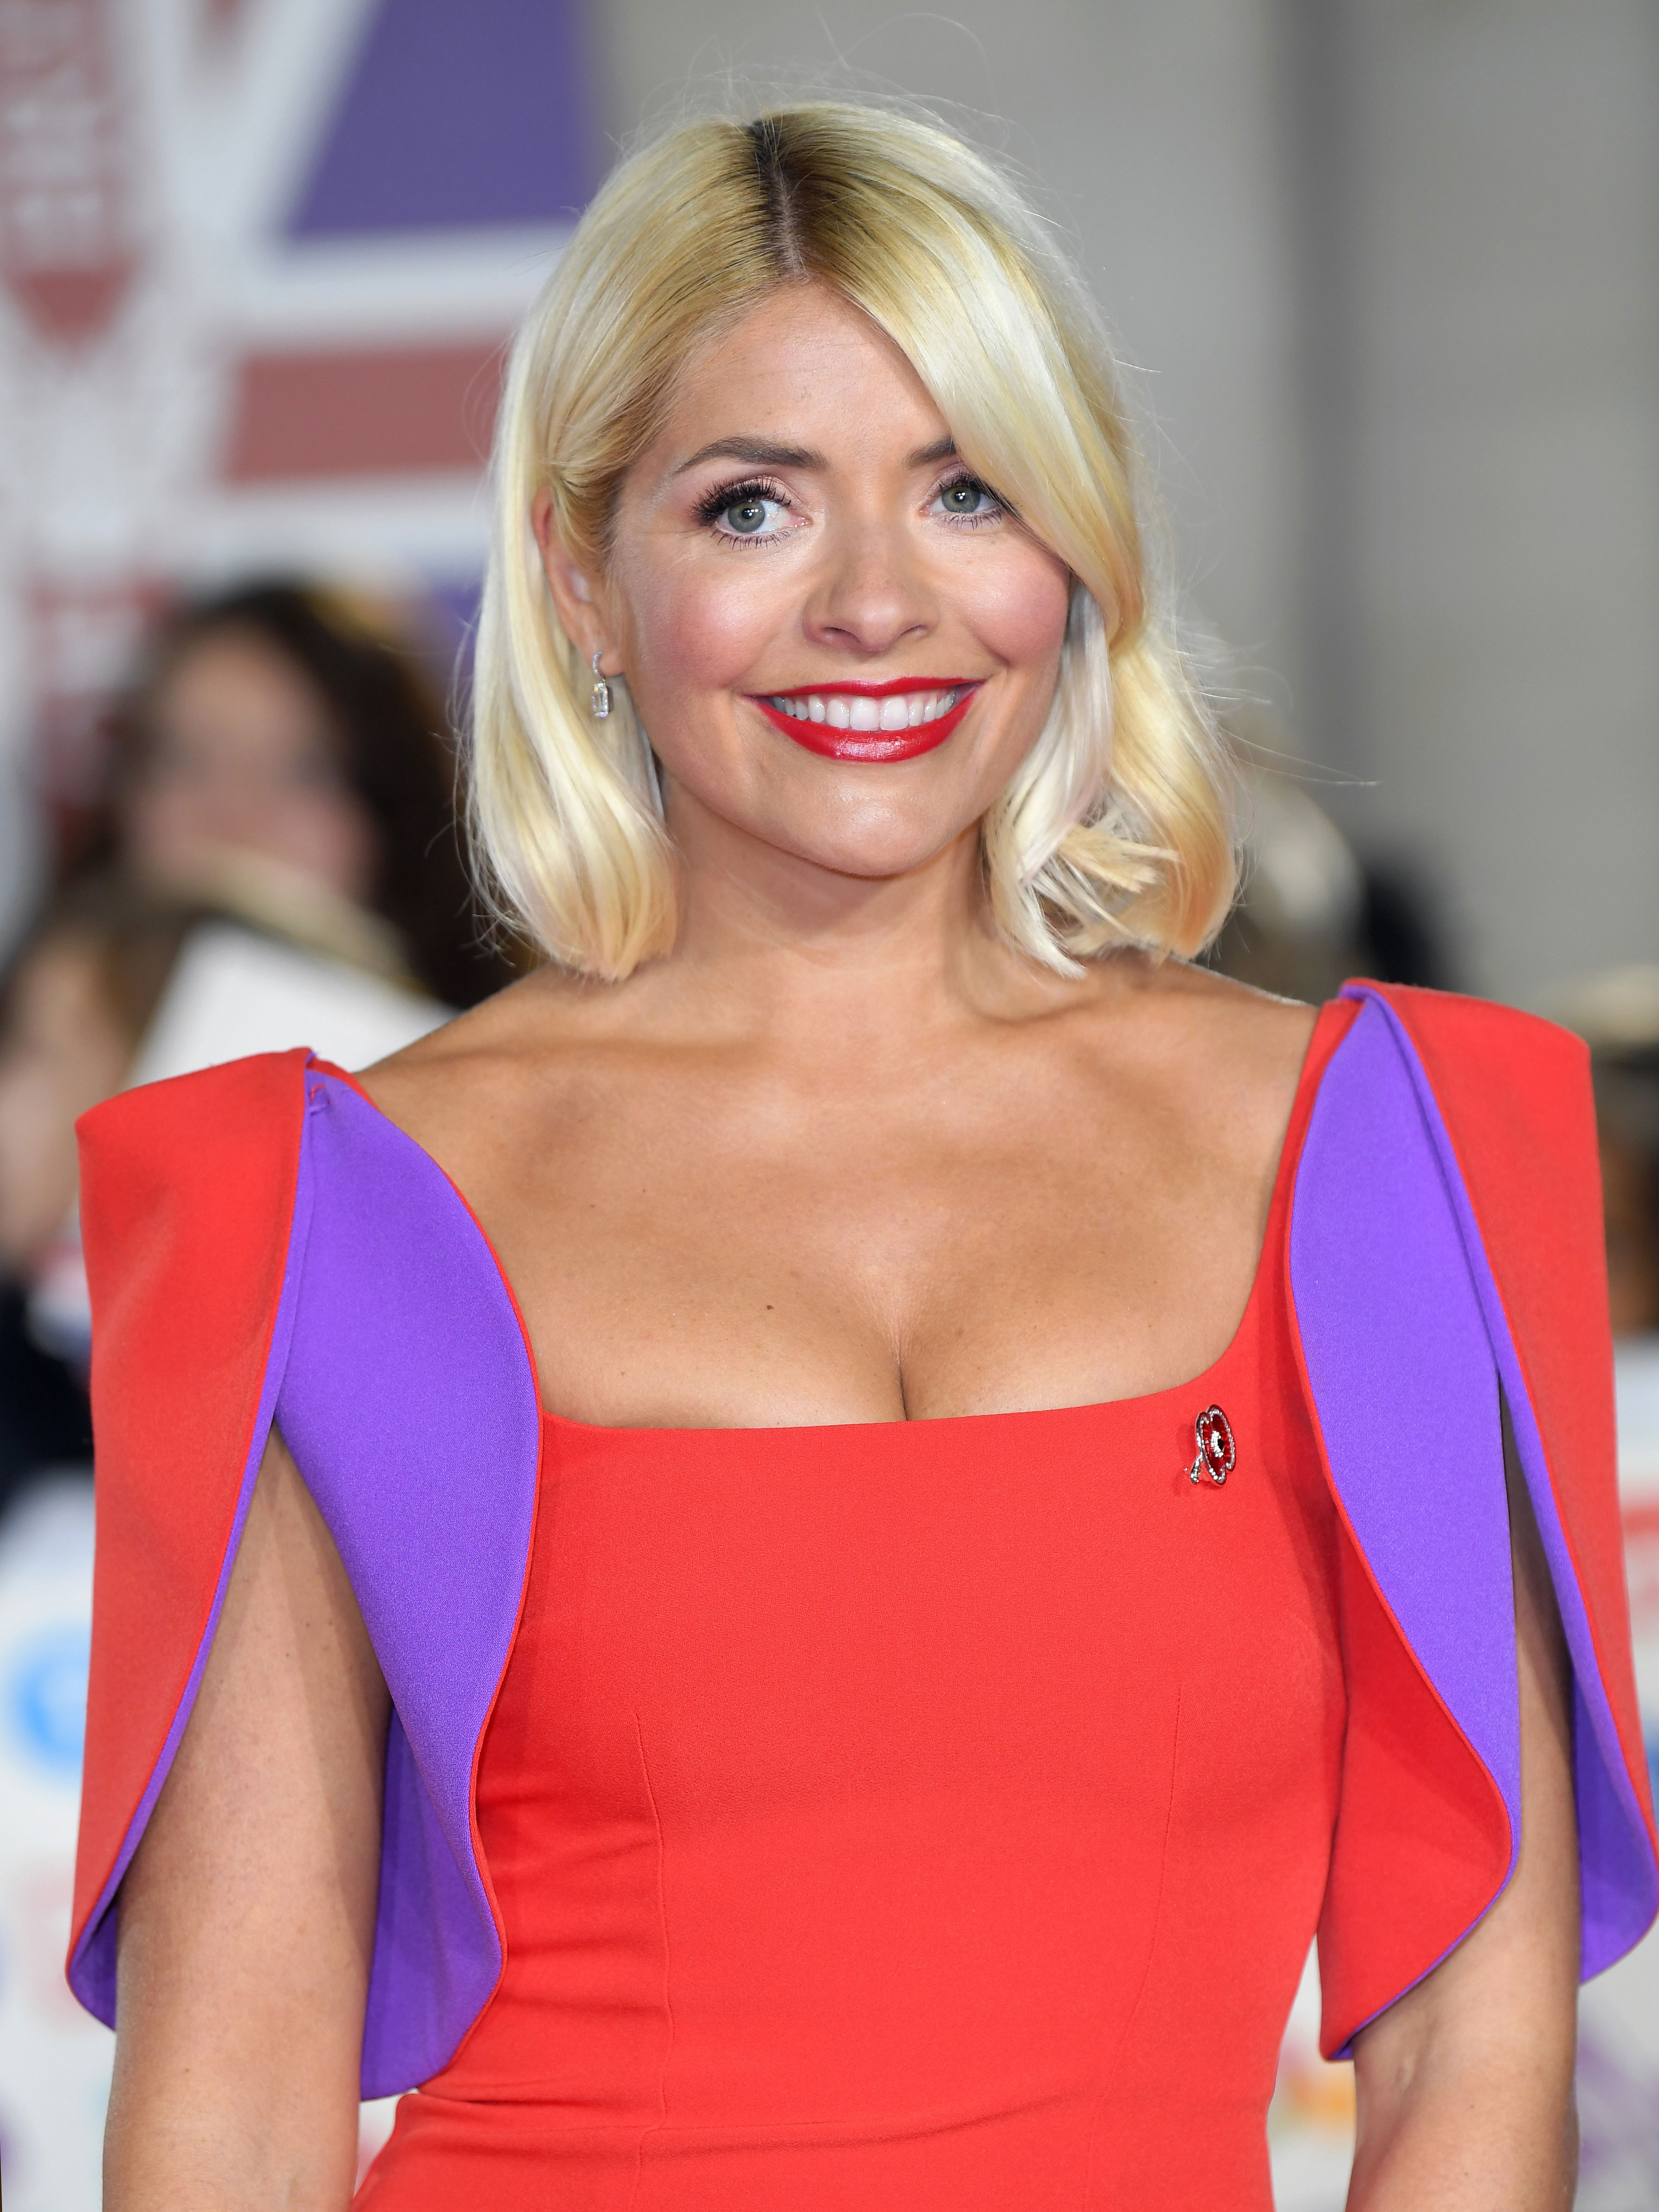 Holly Willoughby leaves fans in a frenzy as she bares legs for sexy snap